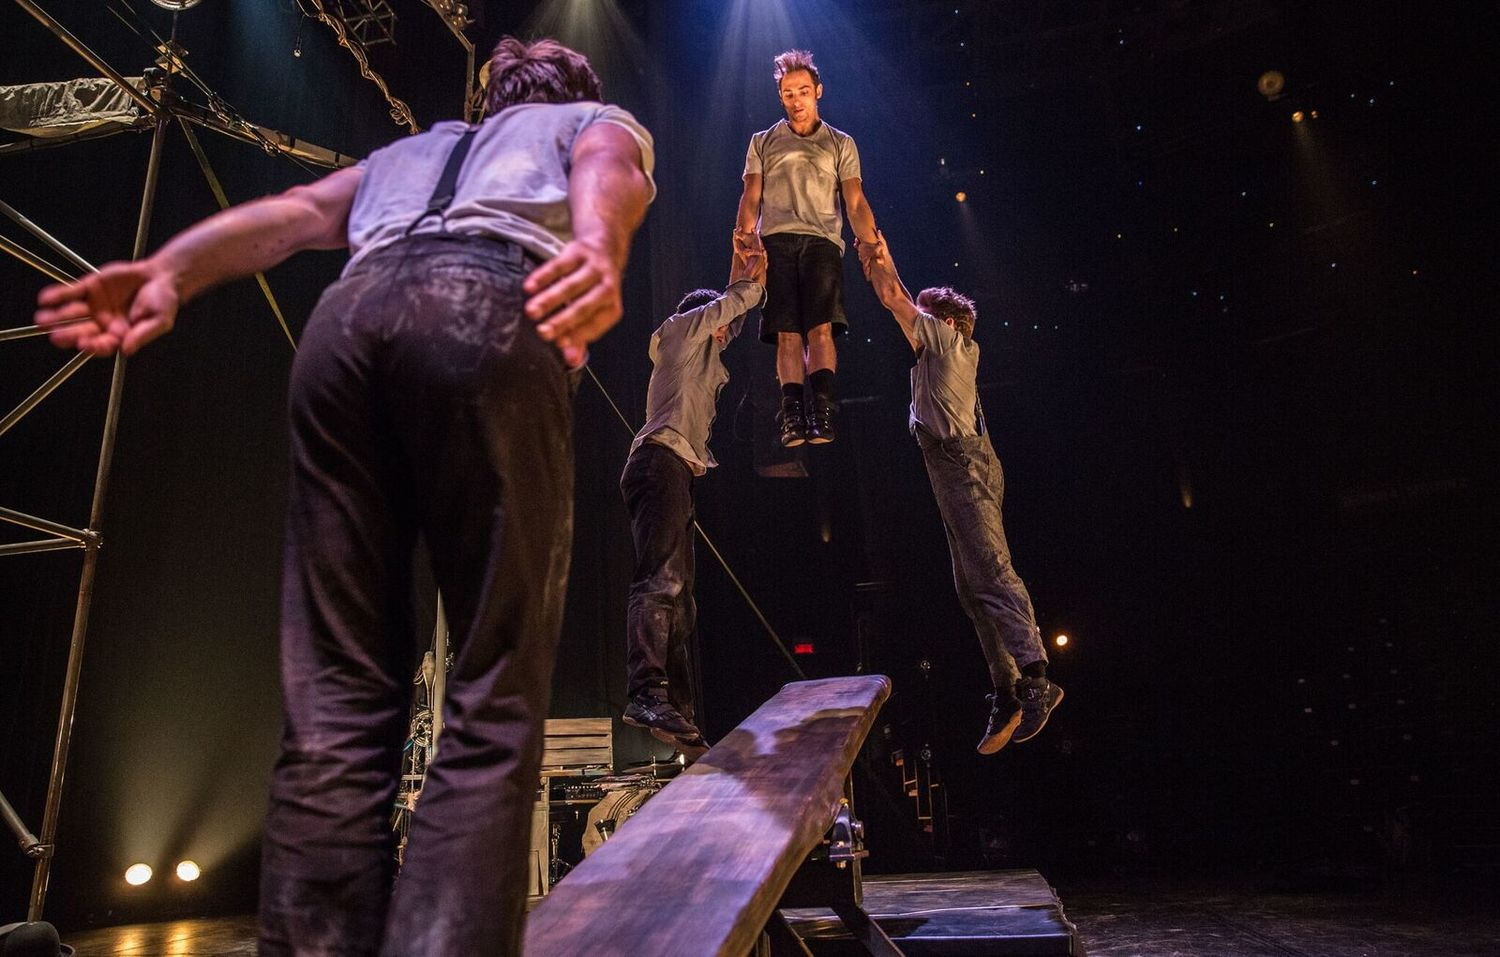 BWW Interview: Machine de Cirque Founder, Vincent Dubé, On Bringing Award-Winning Circus from Quebec to the New 42nd Street New Victory Theater This Fall!